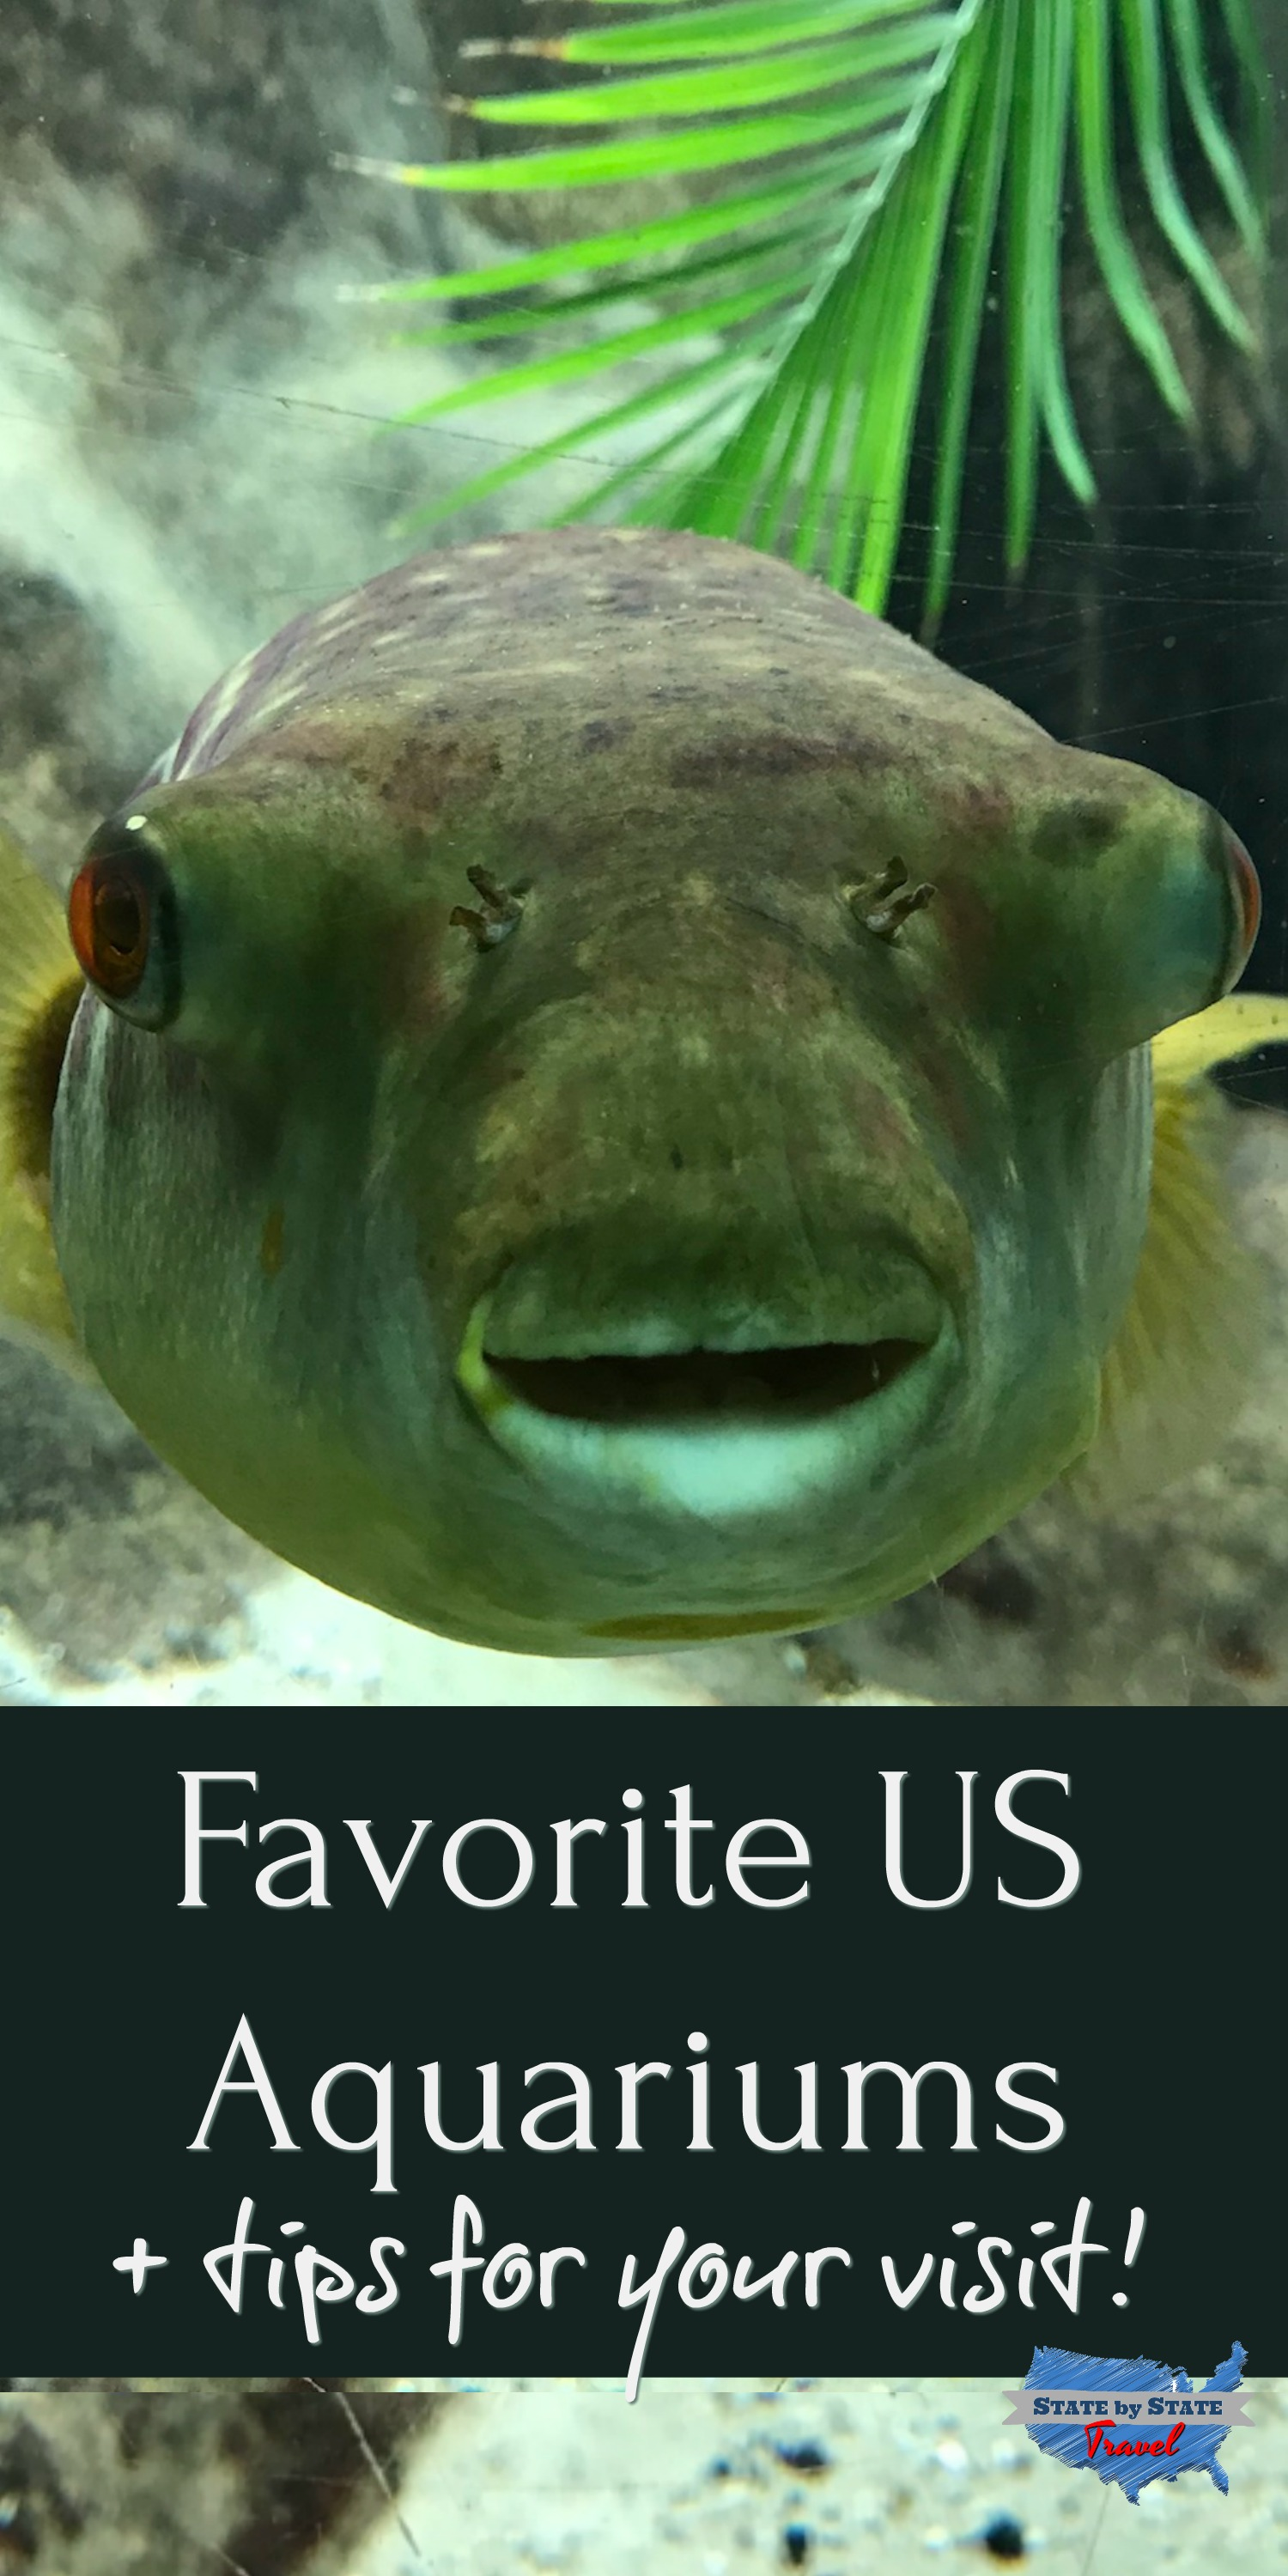 Favorite U.S. Aquariums